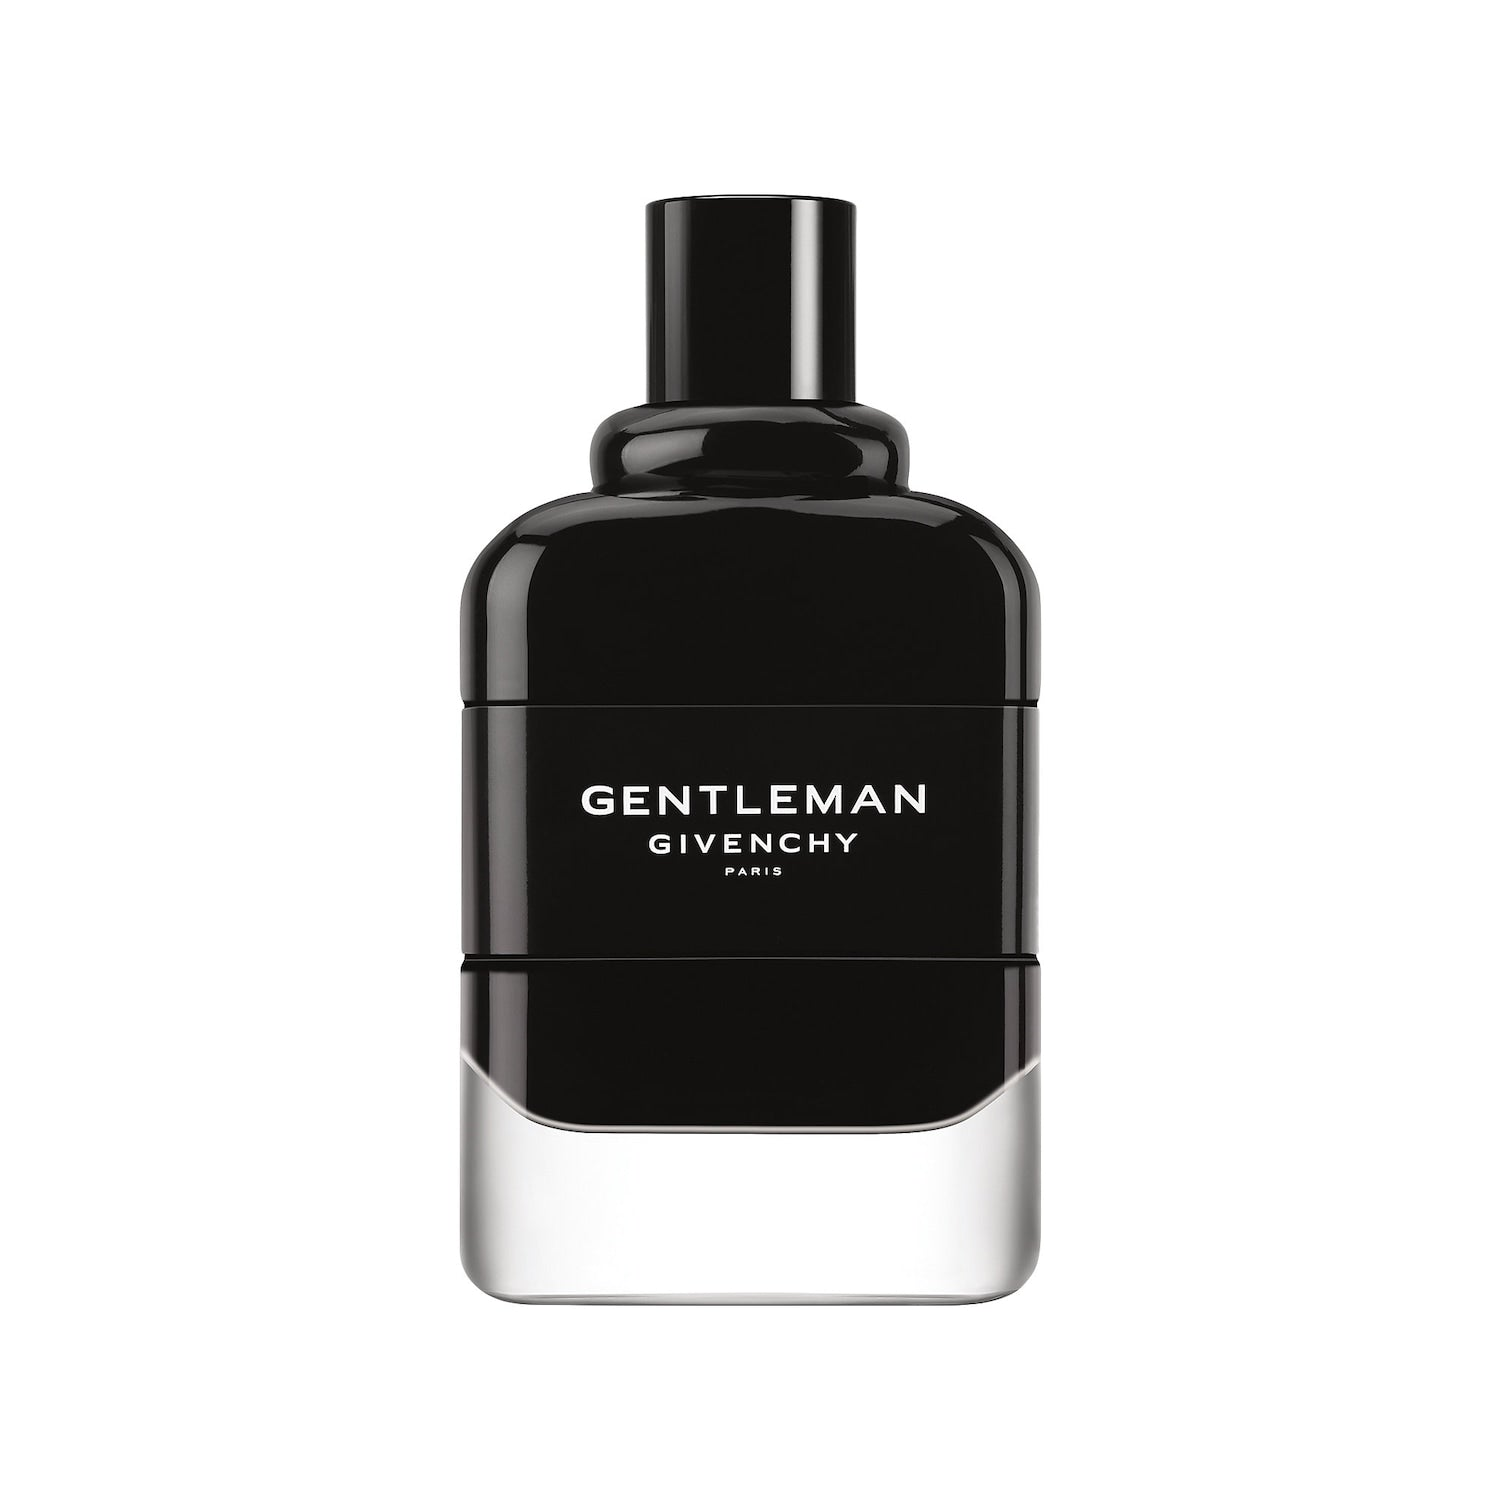 Gentleman Eau De Parfum Spray (New Packaging)